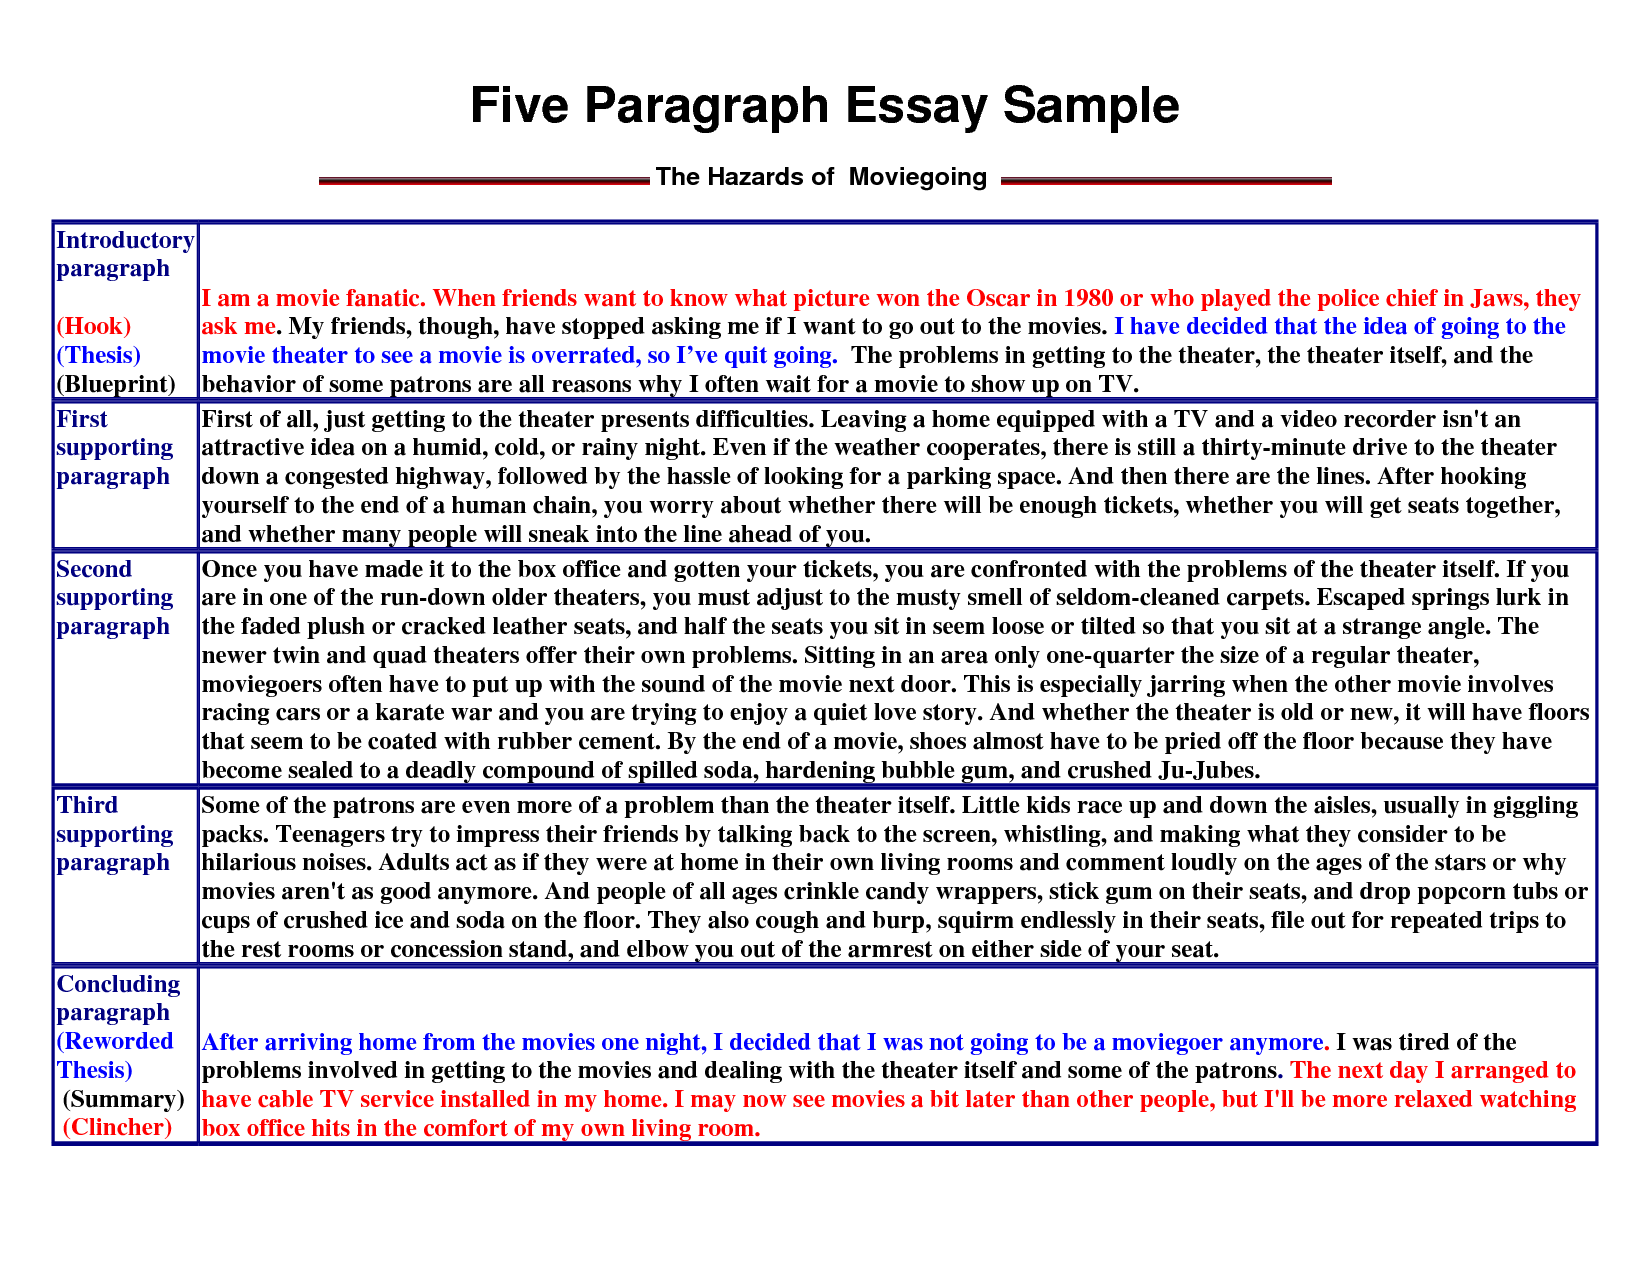 writing a 5 page essay Sample essay alan mostov october 21, 2011 mods 1 - 3 three simple steps to writing an essay you stare in horror at the vastness of the empty page.